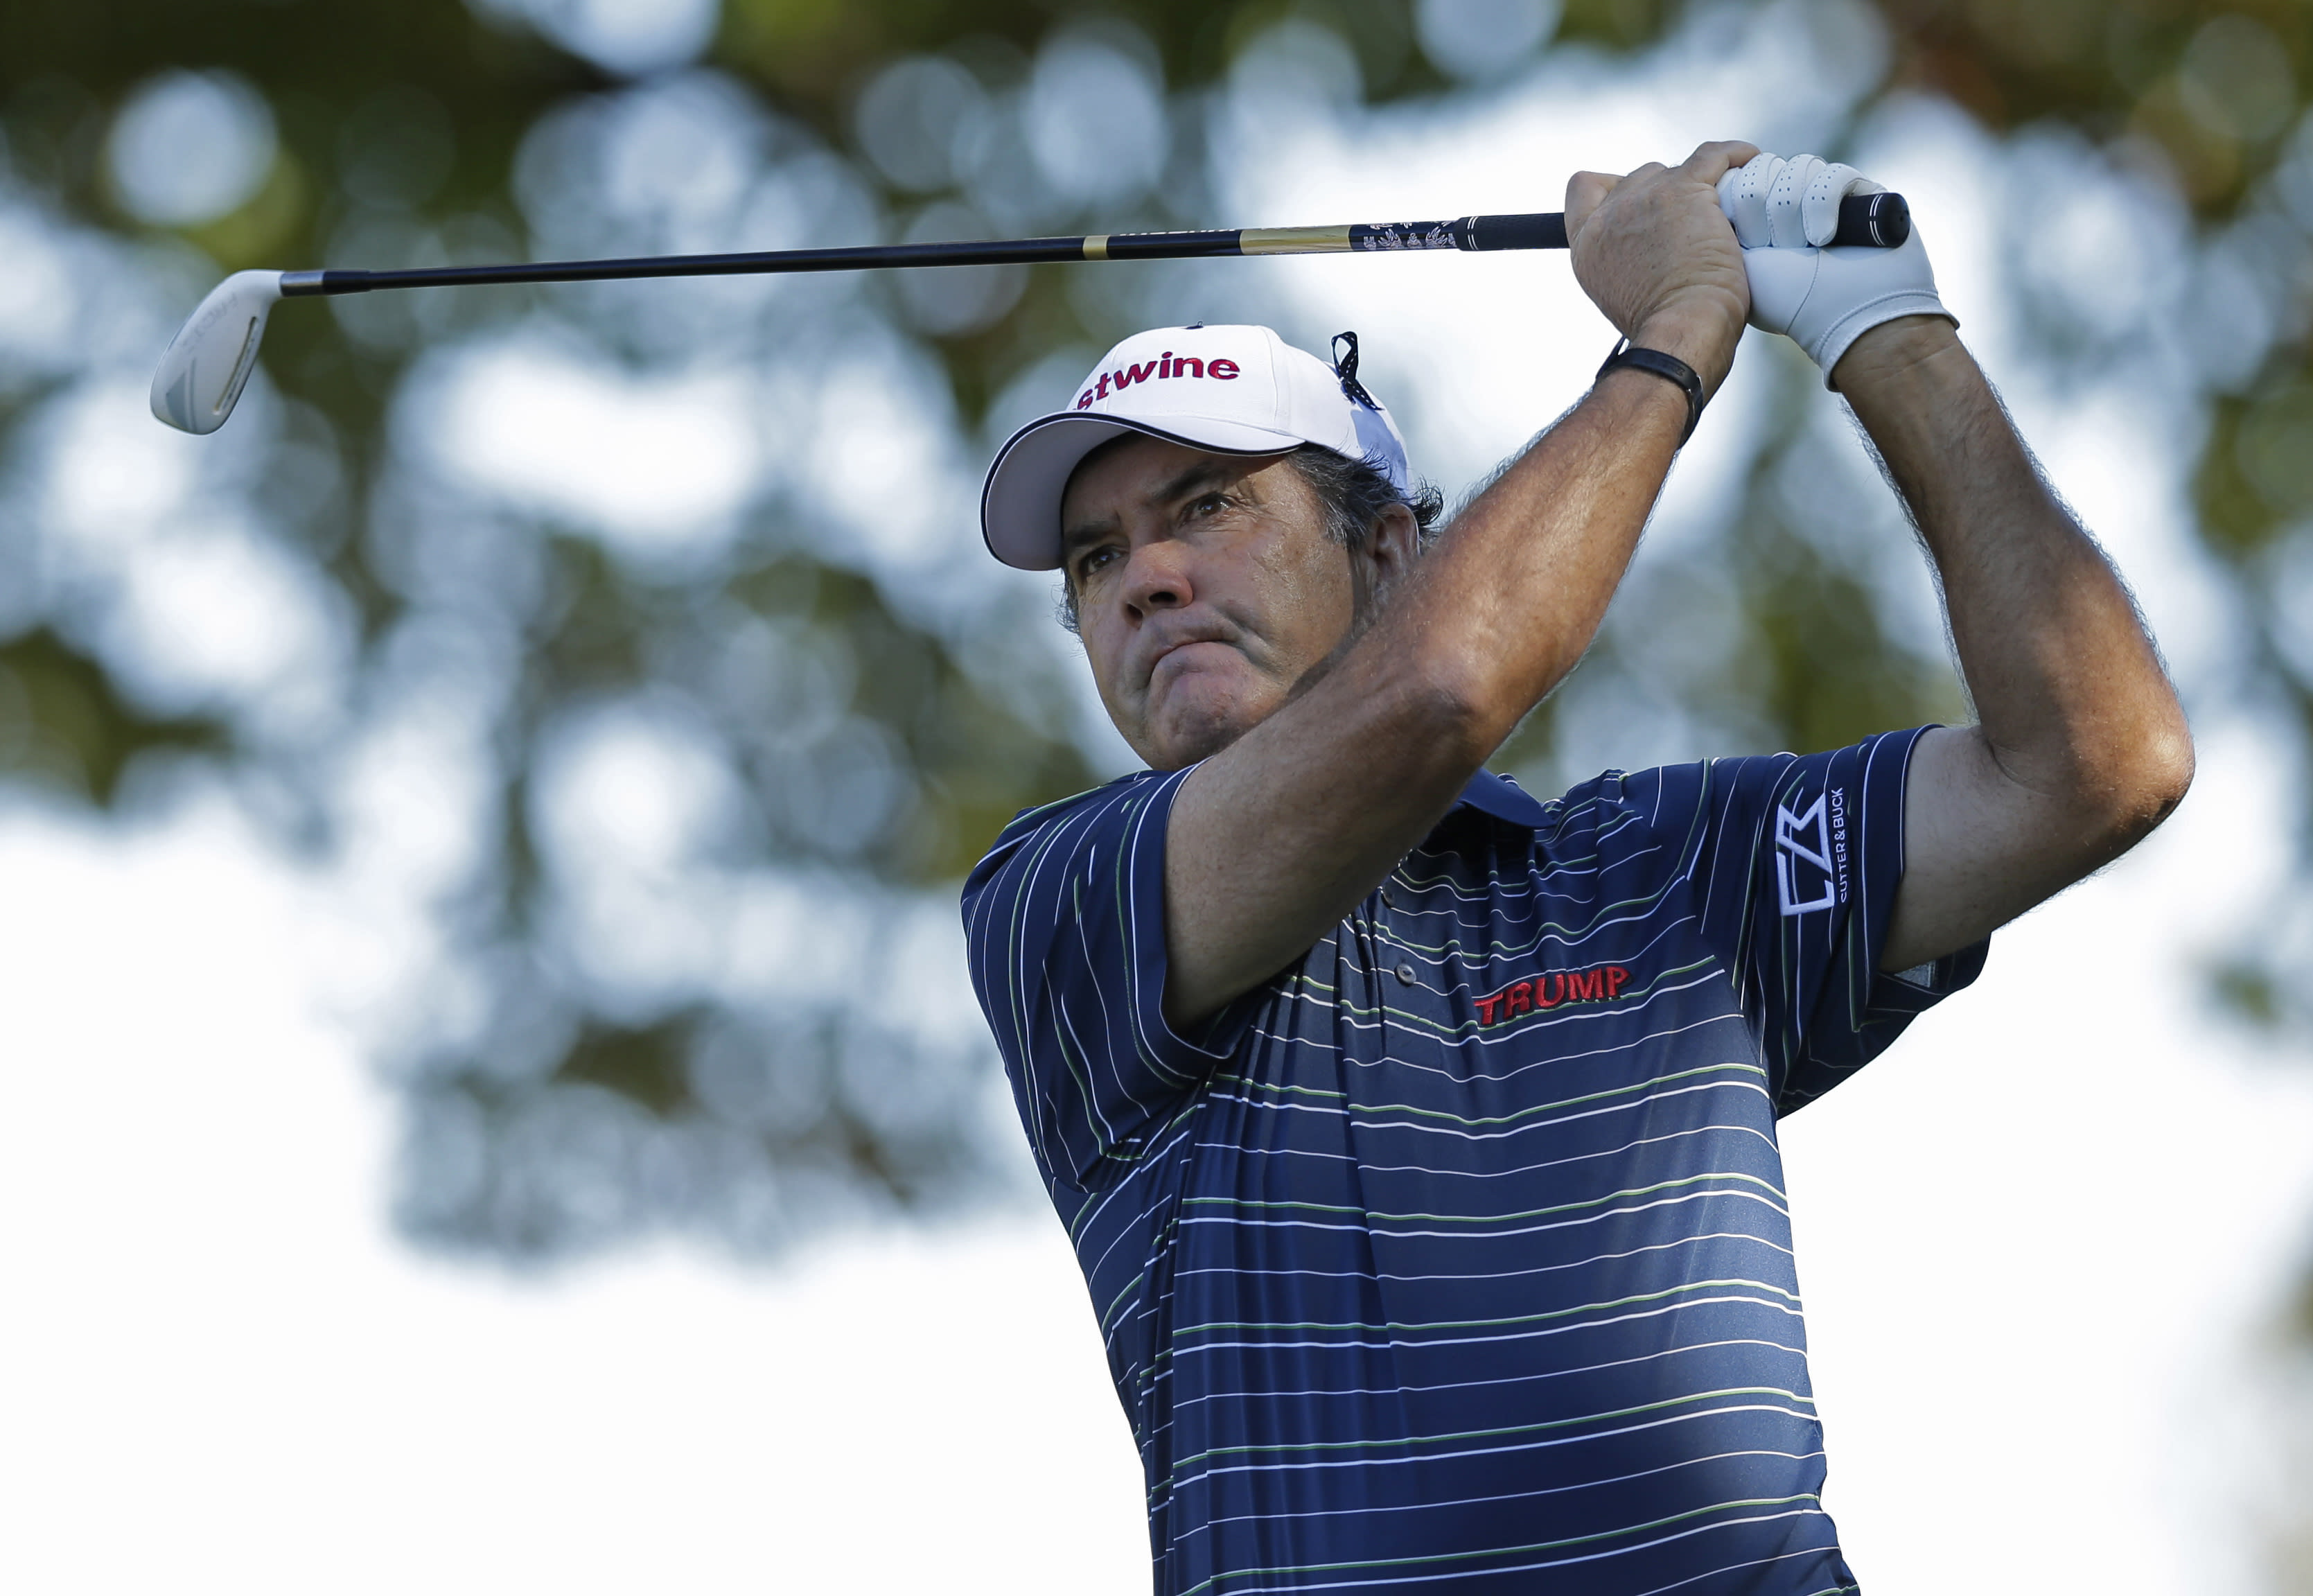 David Frost wins Champions Tour event in Mississippi